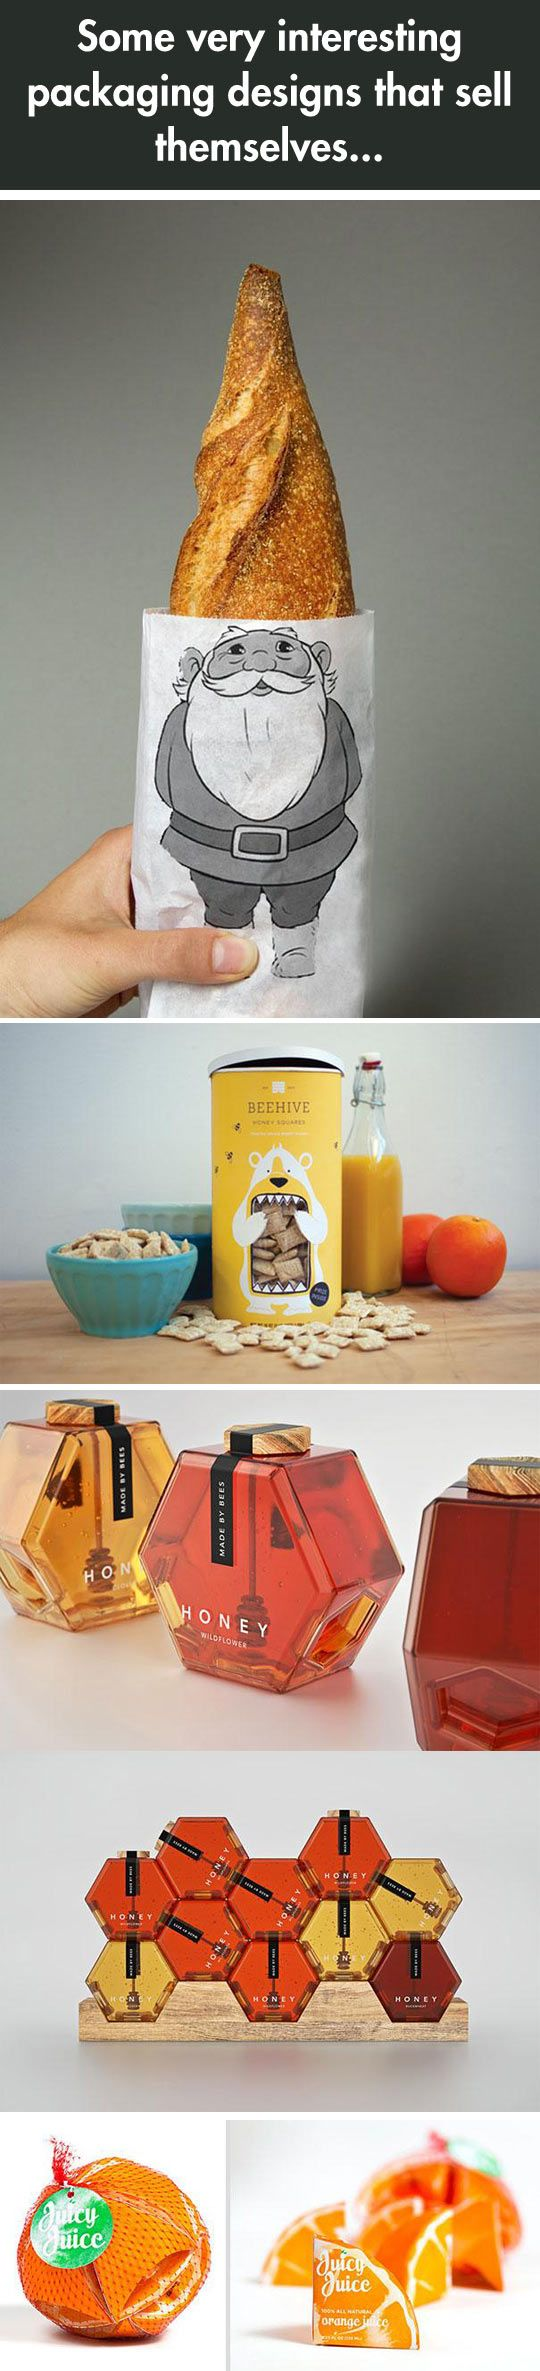 Amazing ideas...and effective as well. #packaging